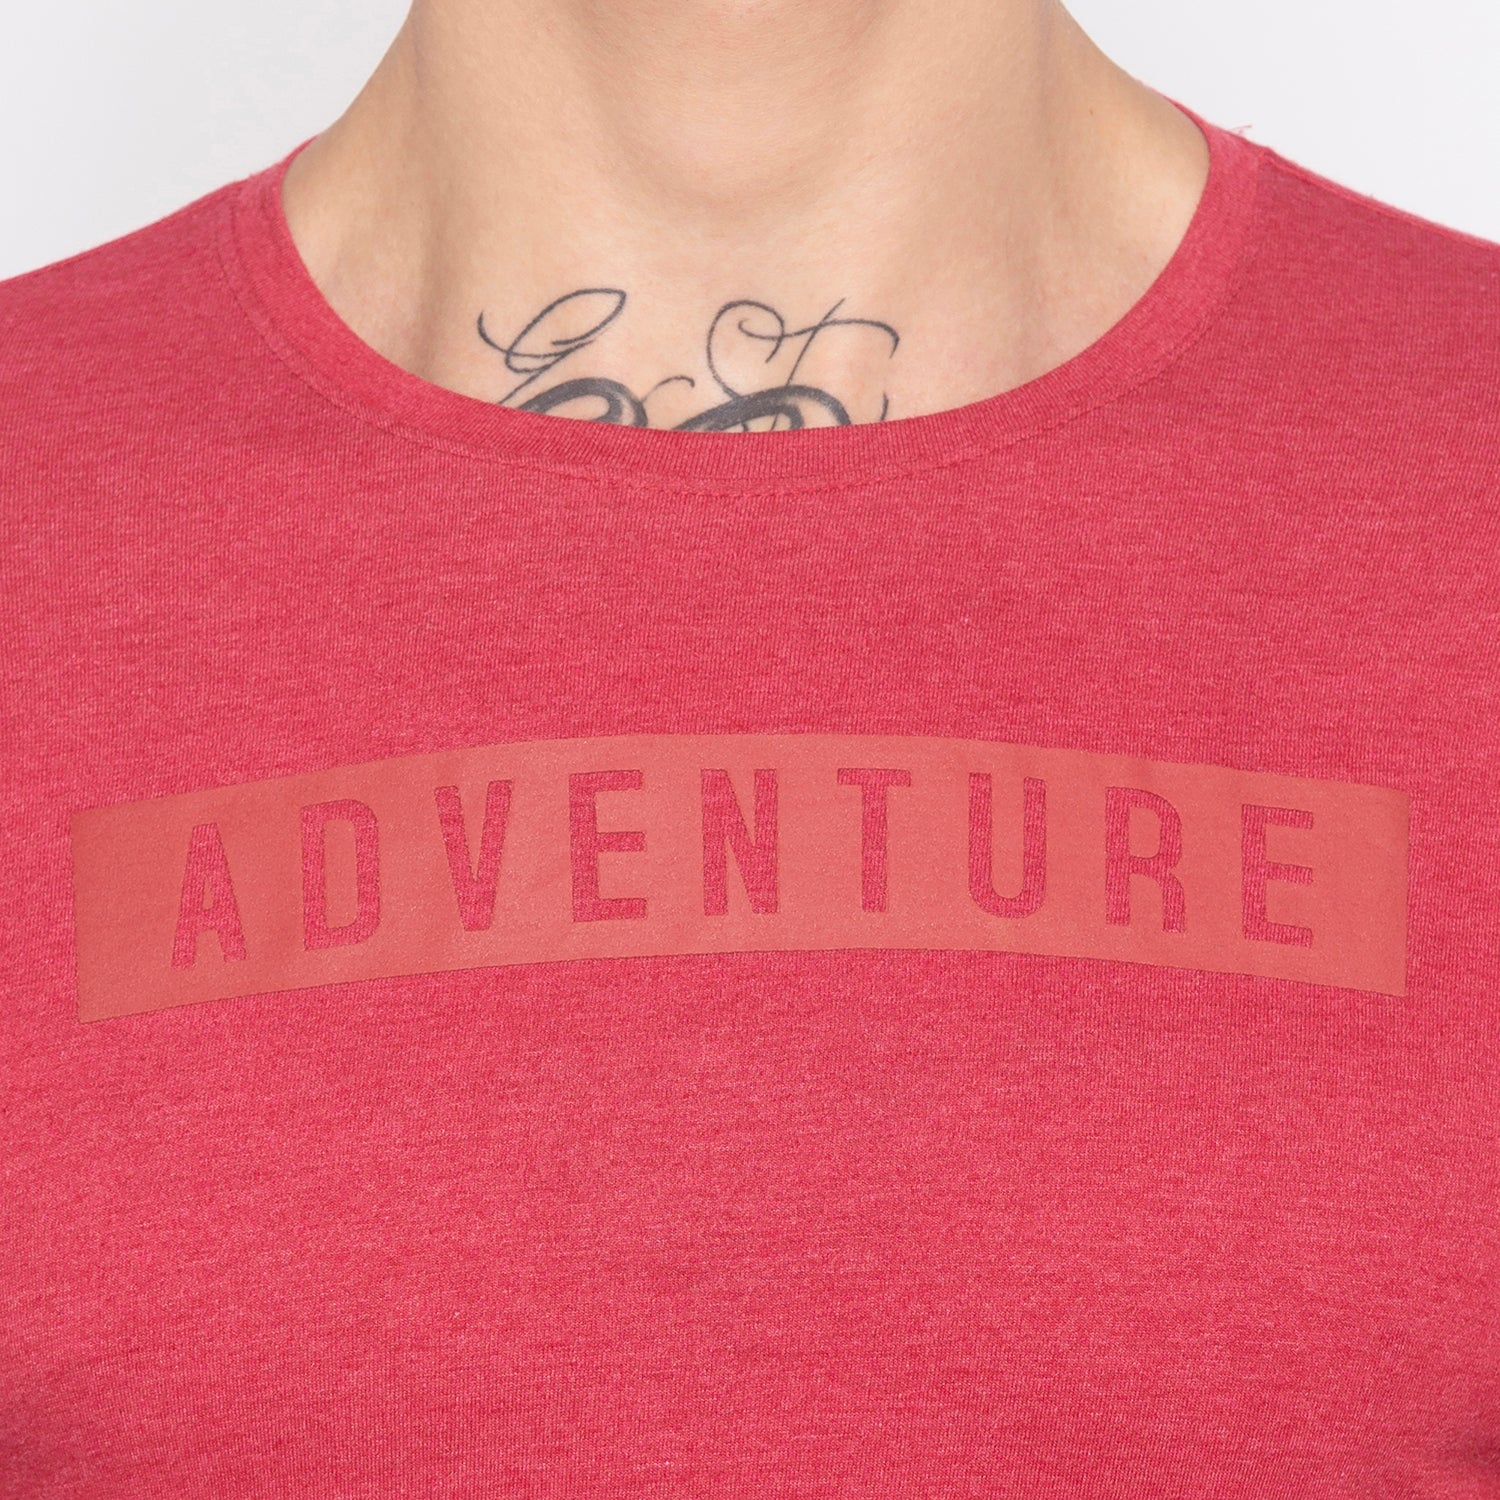 Adventure Full Sleeve Red T-shirt-5